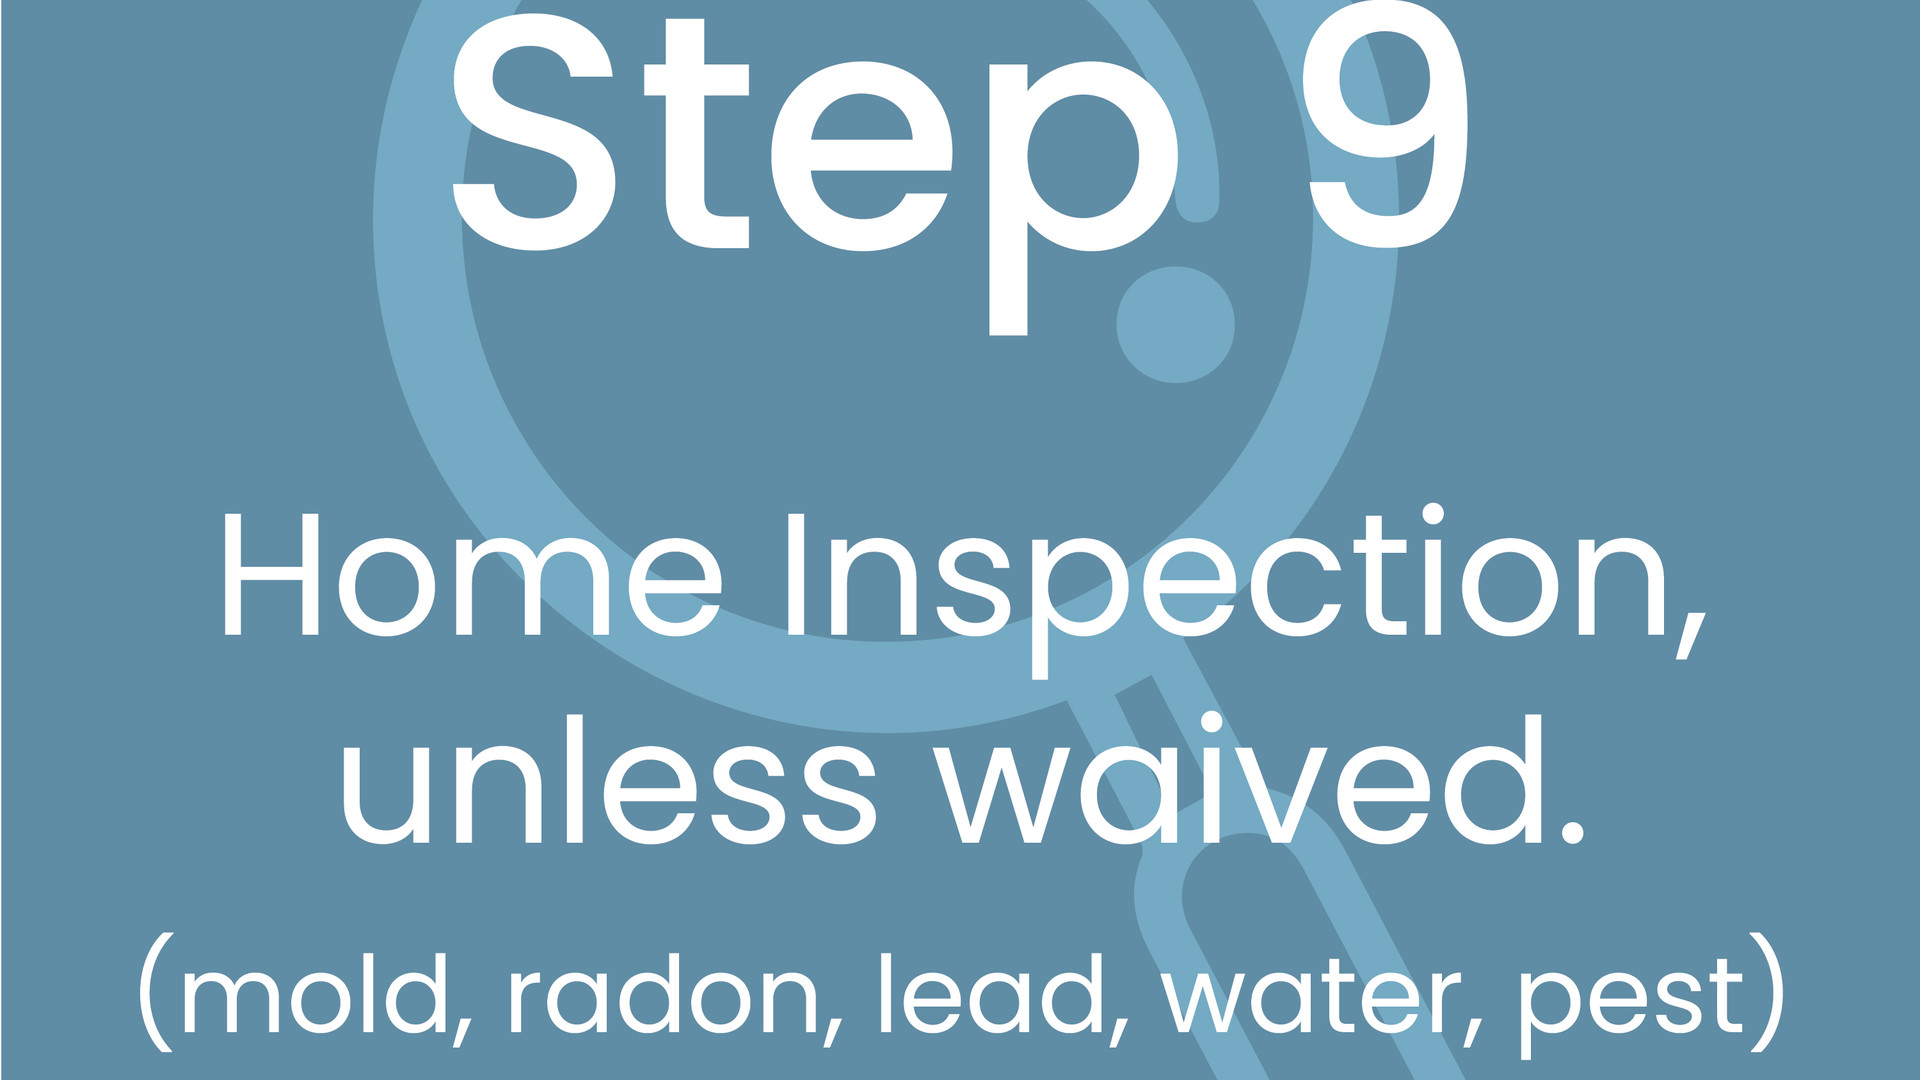 Step 9: Home Inspection, Unless Waived